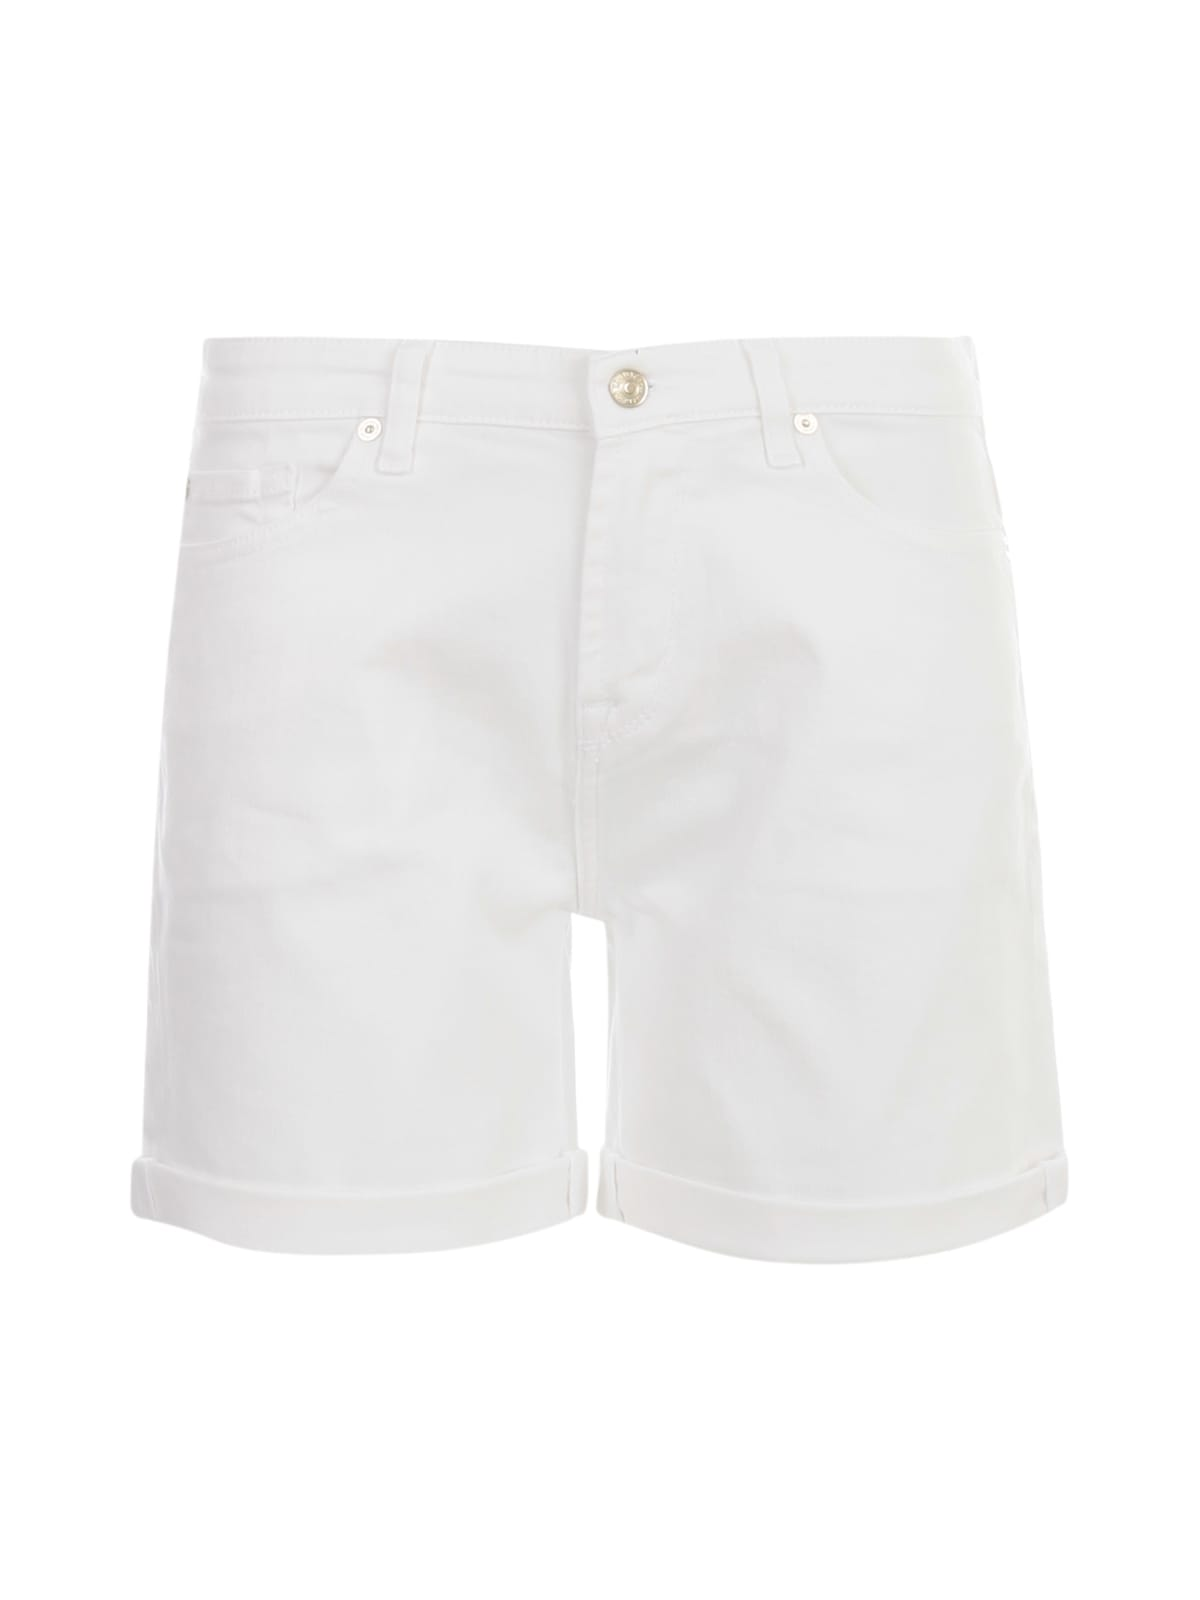 7 For All Mankind BOY SHORTS COLORED TWILL WHITE